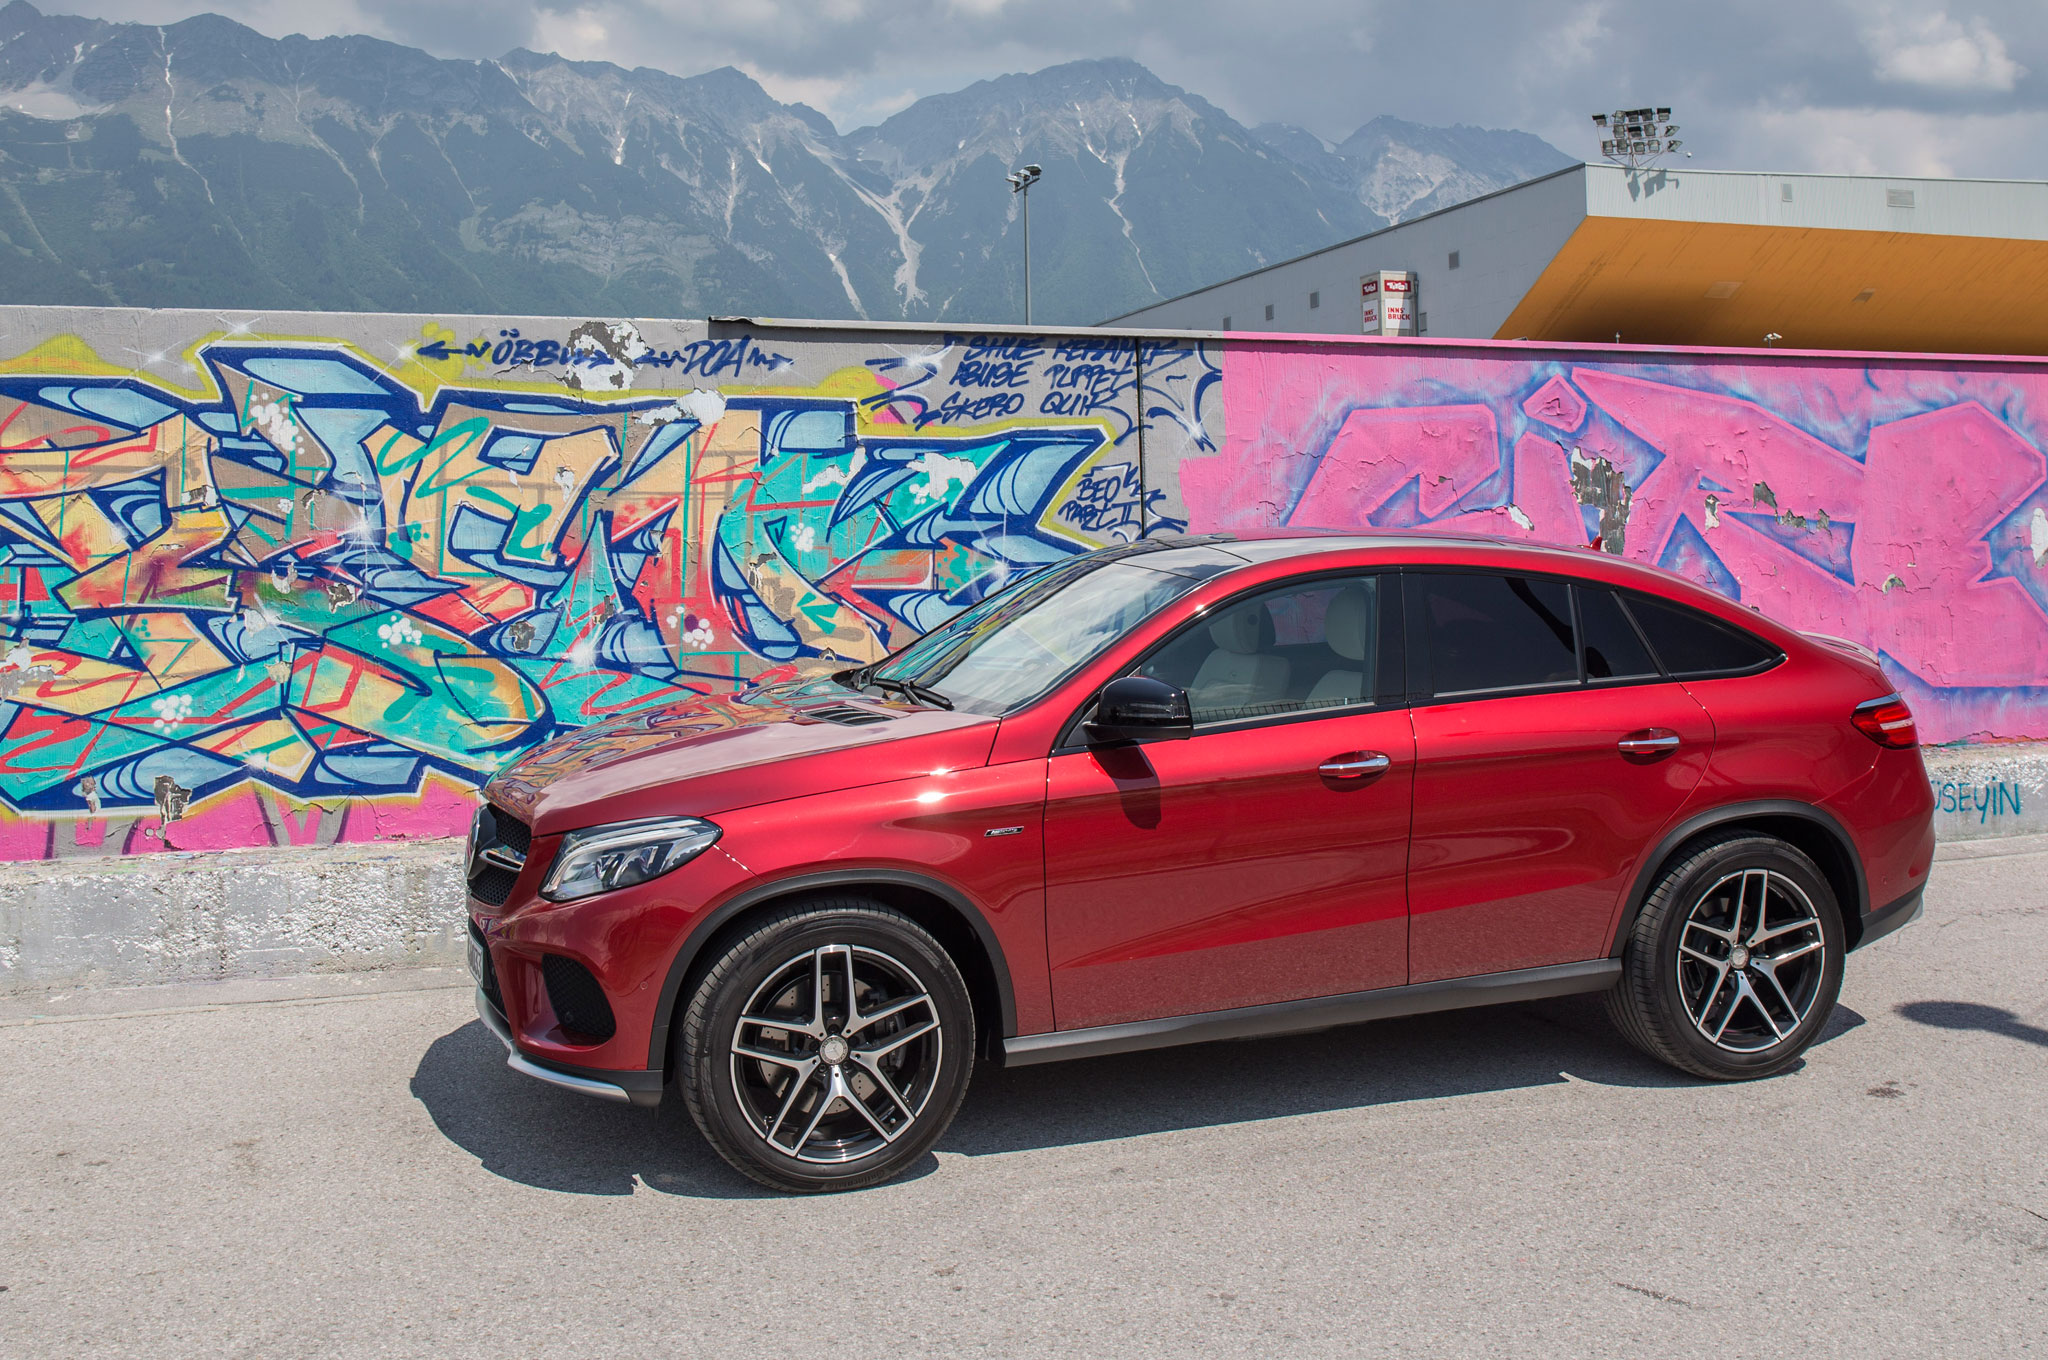 https://st.automobilemag.com/uploads/sites/11/2015/06/2016-Mercedes-Benz-GLE450-AMG-4Matic-Coupe-side-profile-03.jpg